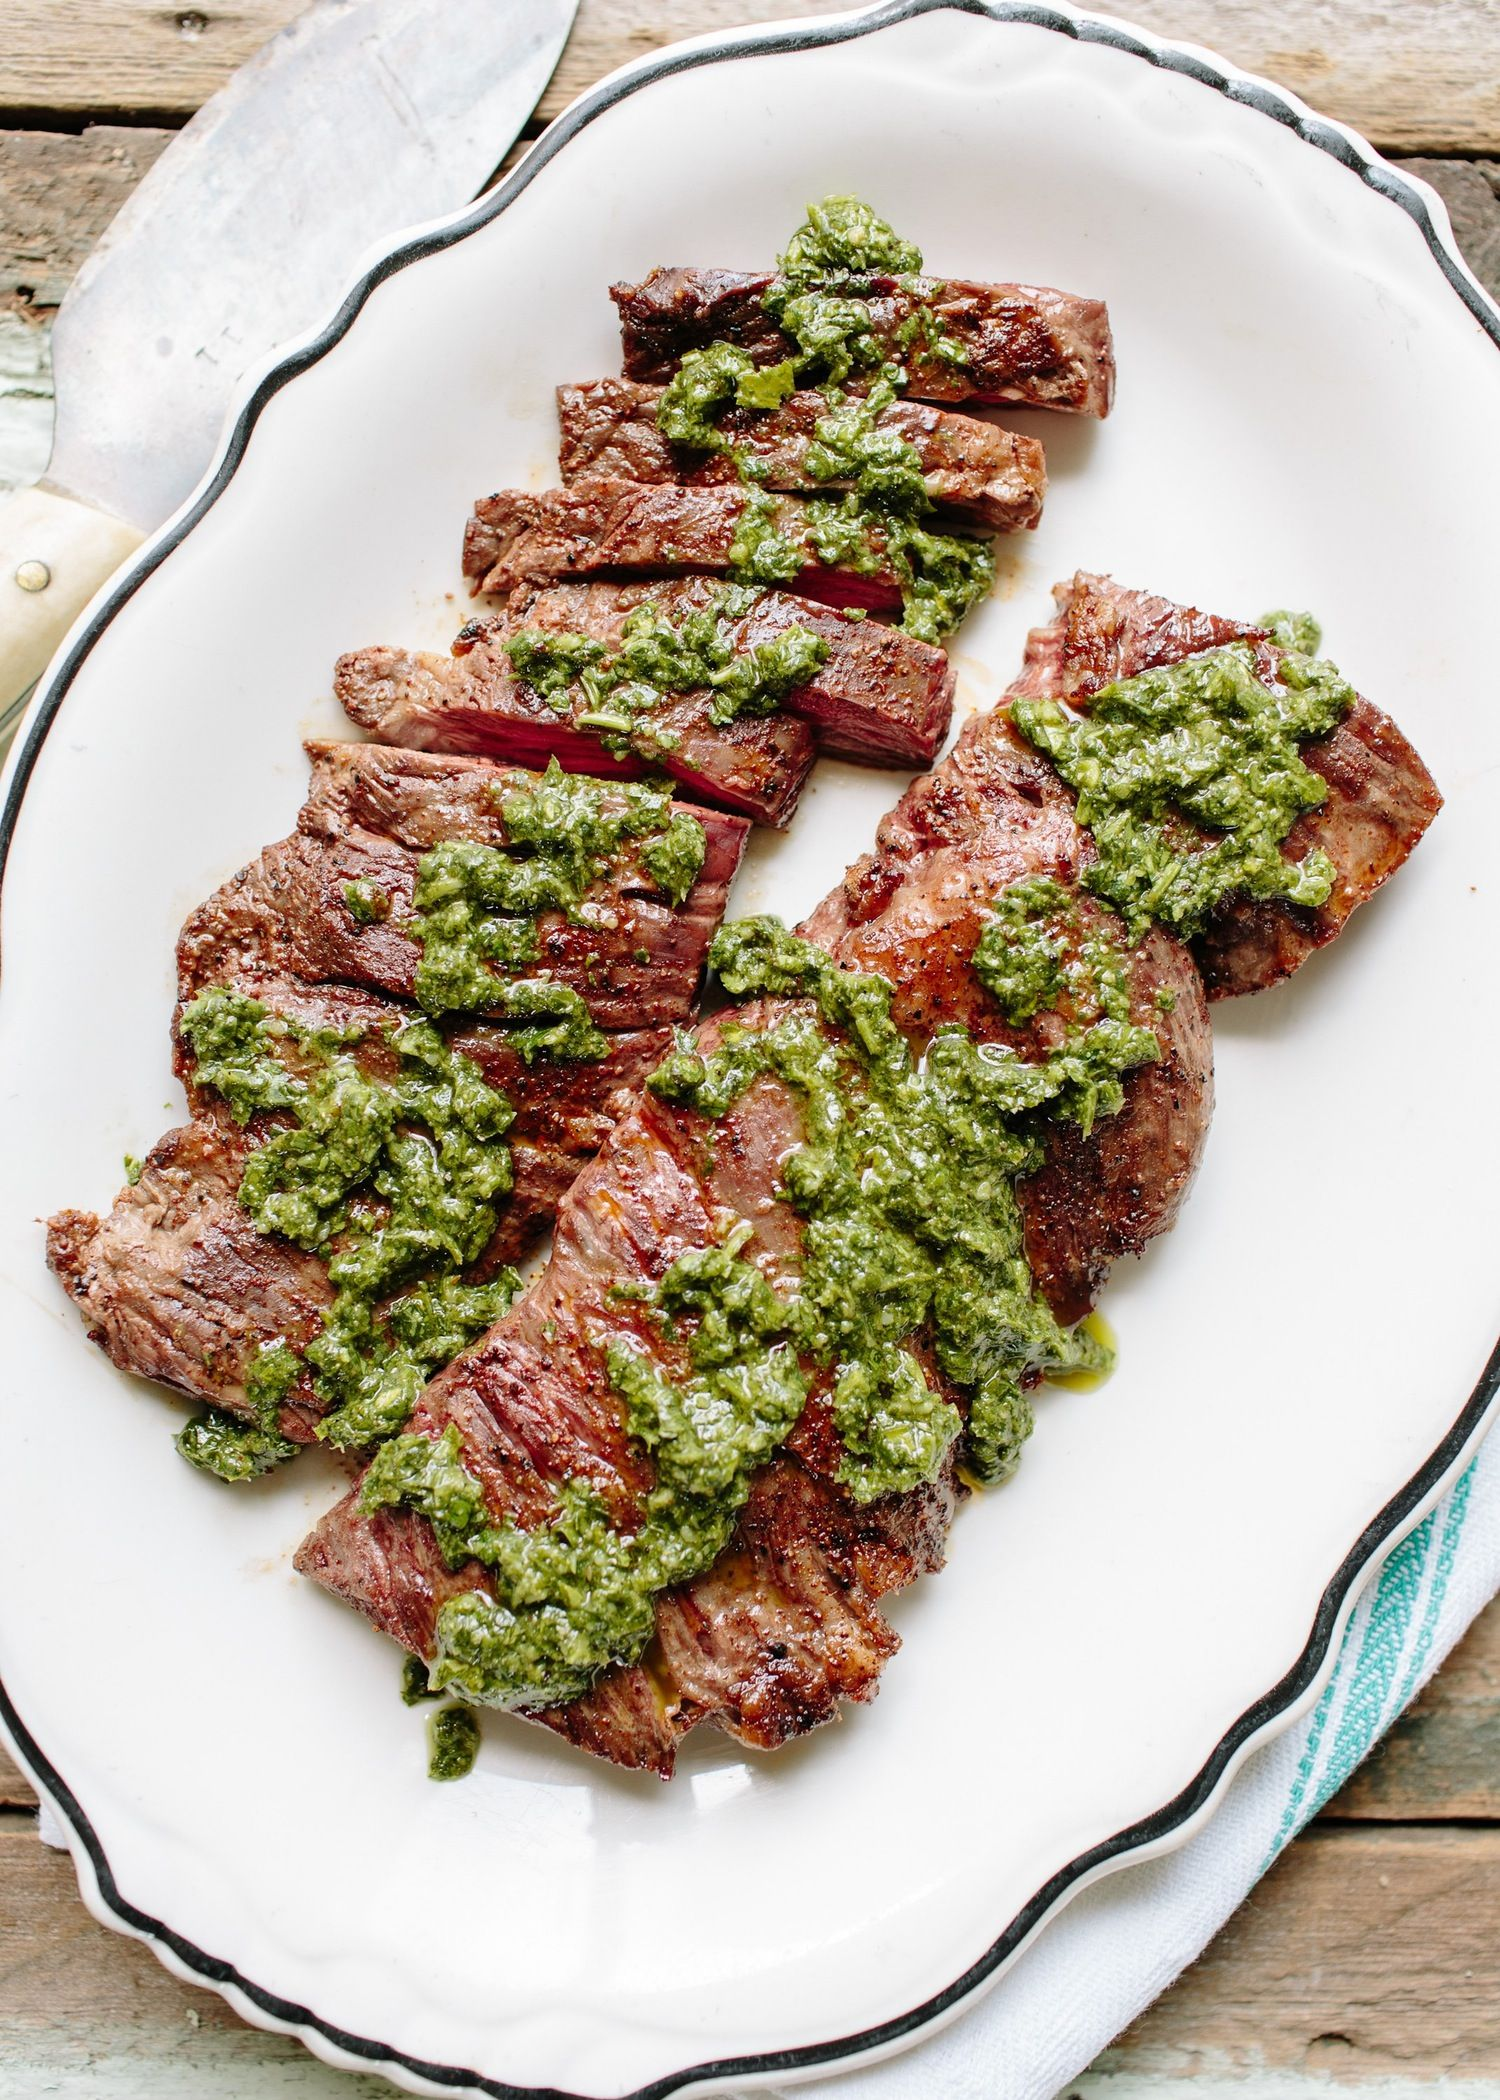 Chimichurri is an Argentinean sauce most commonly served with red meat, but it is also delicious on grilled poultry or drizzled over poached…